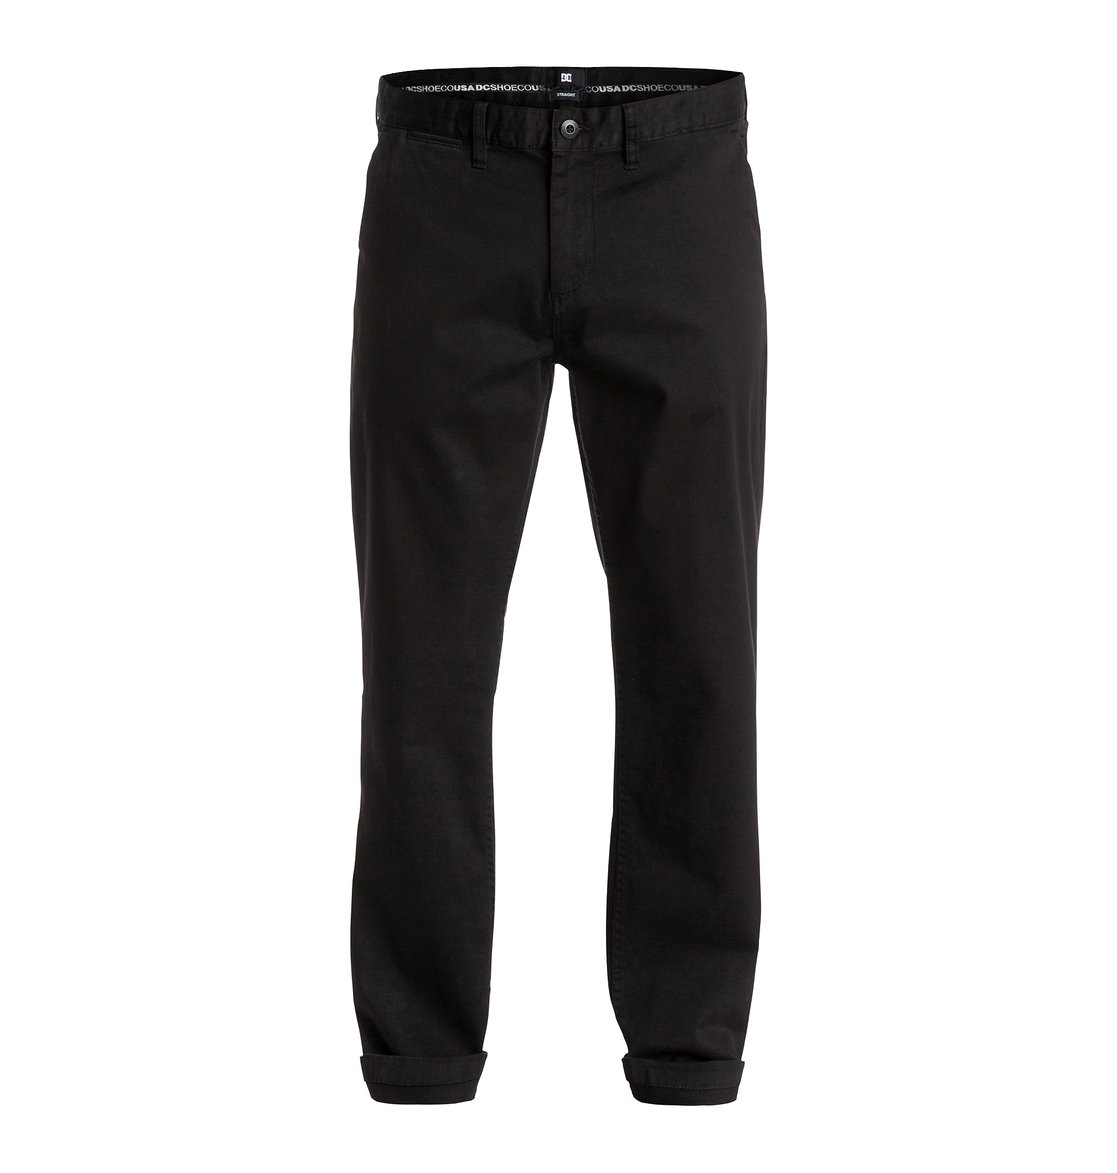 6e8678393 0 Worker Straight Fit 32